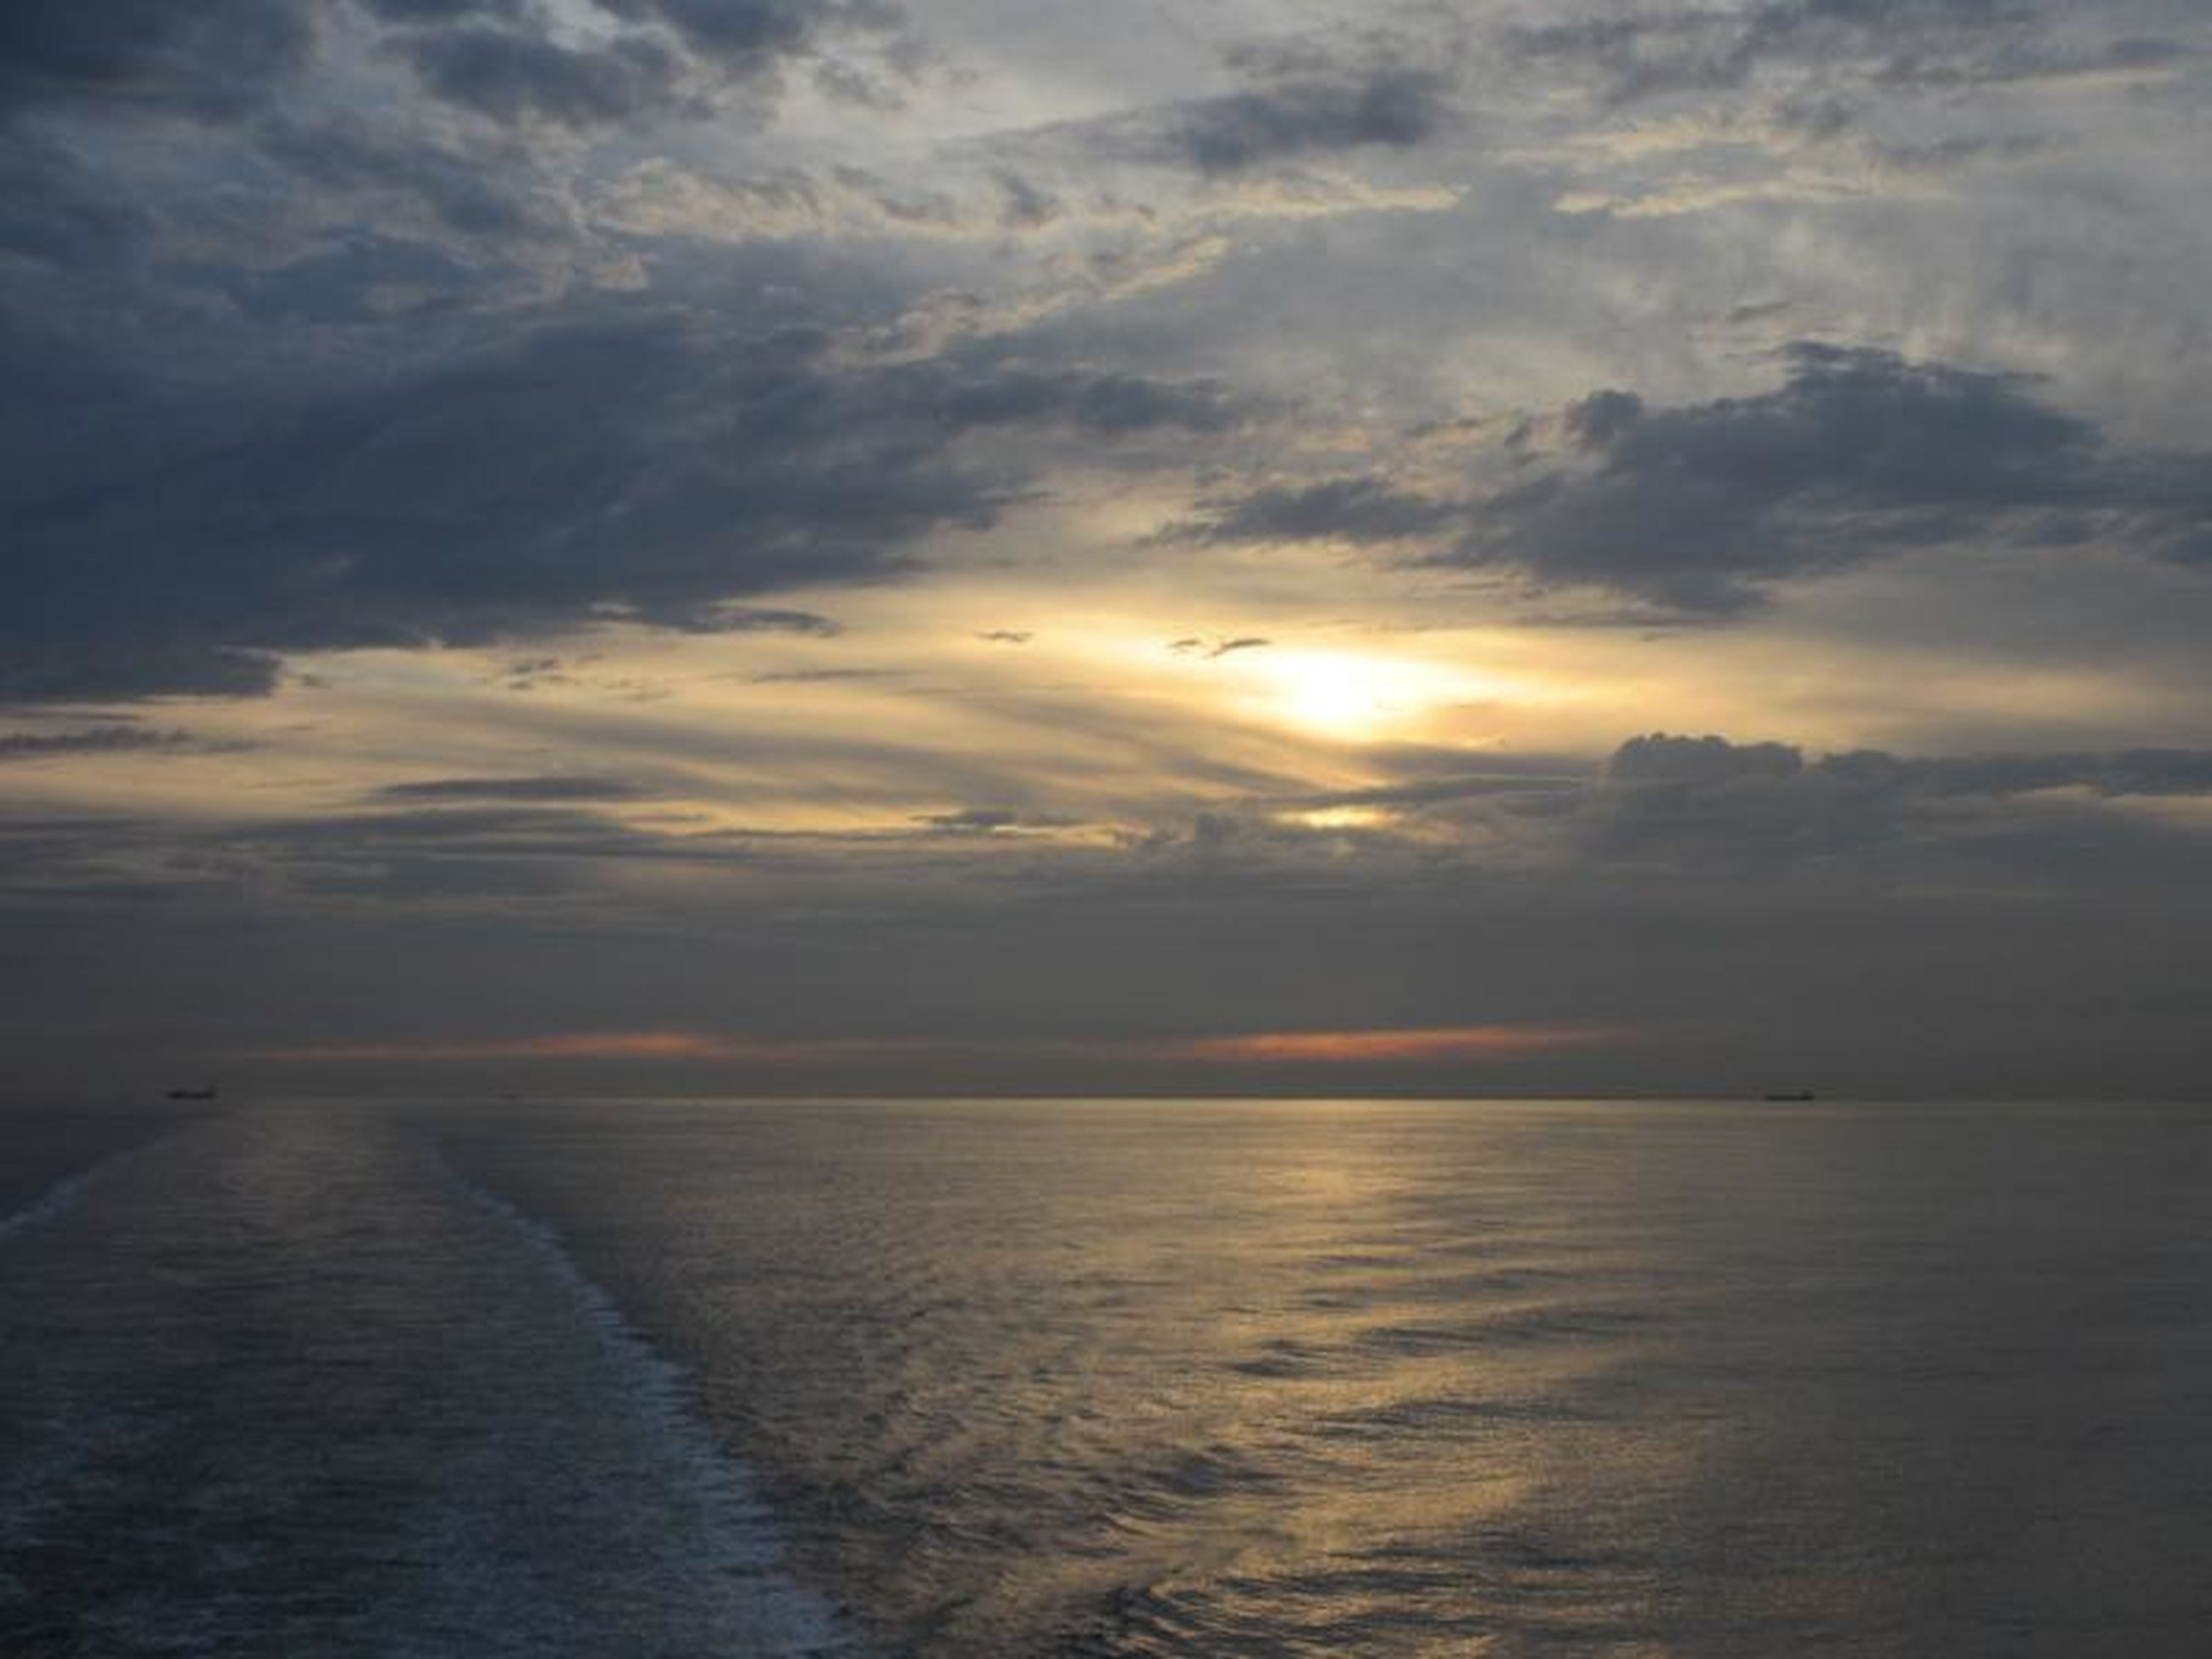 sunset, sea, sky, water, scenics, tranquil scene, horizon over water, beauty in nature, tranquility, cloud - sky, sun, nature, idyllic, reflection, cloudy, cloud, beach, orange color, silhouette, sunlight